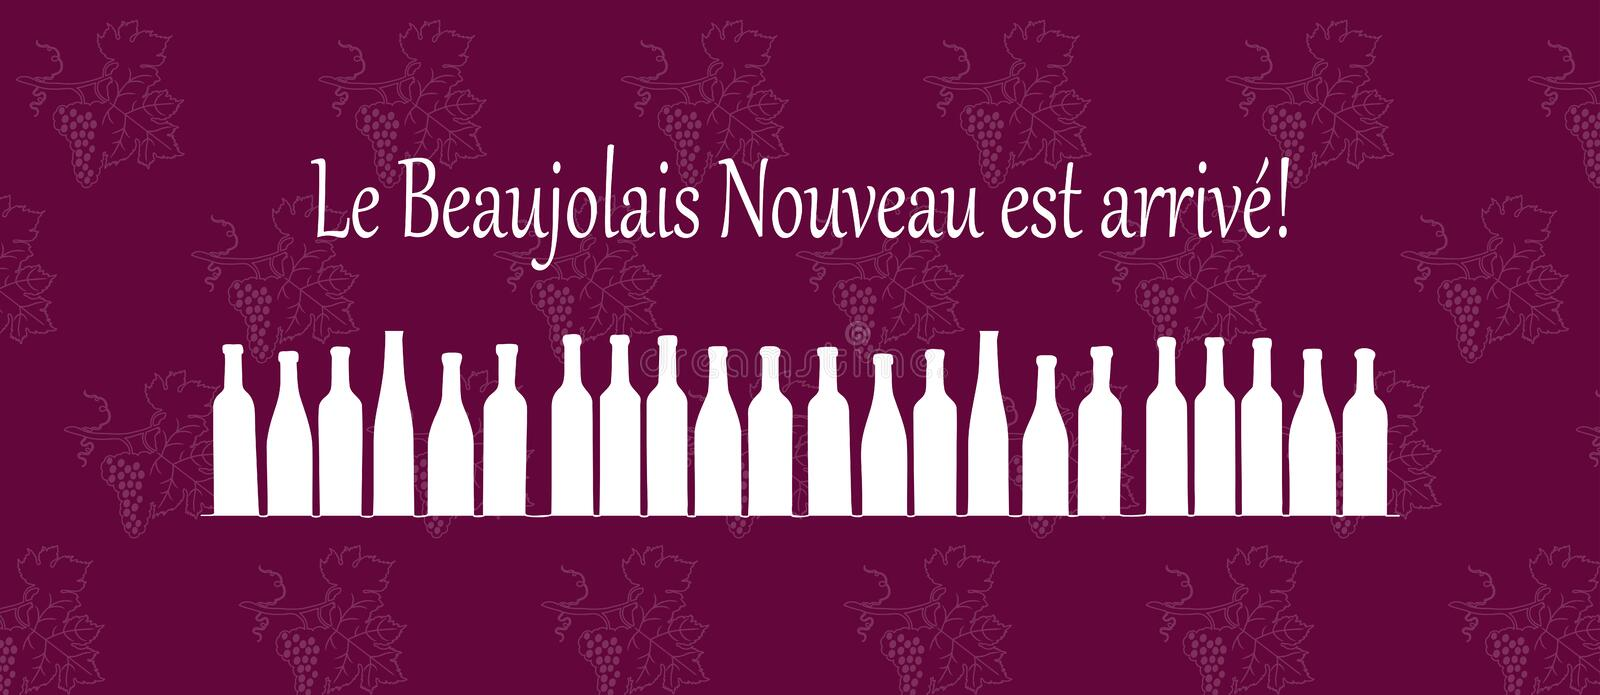 Text Le Beaujolais est arrive means the Beaujolais wine is coming. Handdrawing vector pattern with grapes. Wine party. Beaujolais Nouveau event in France stock illustration